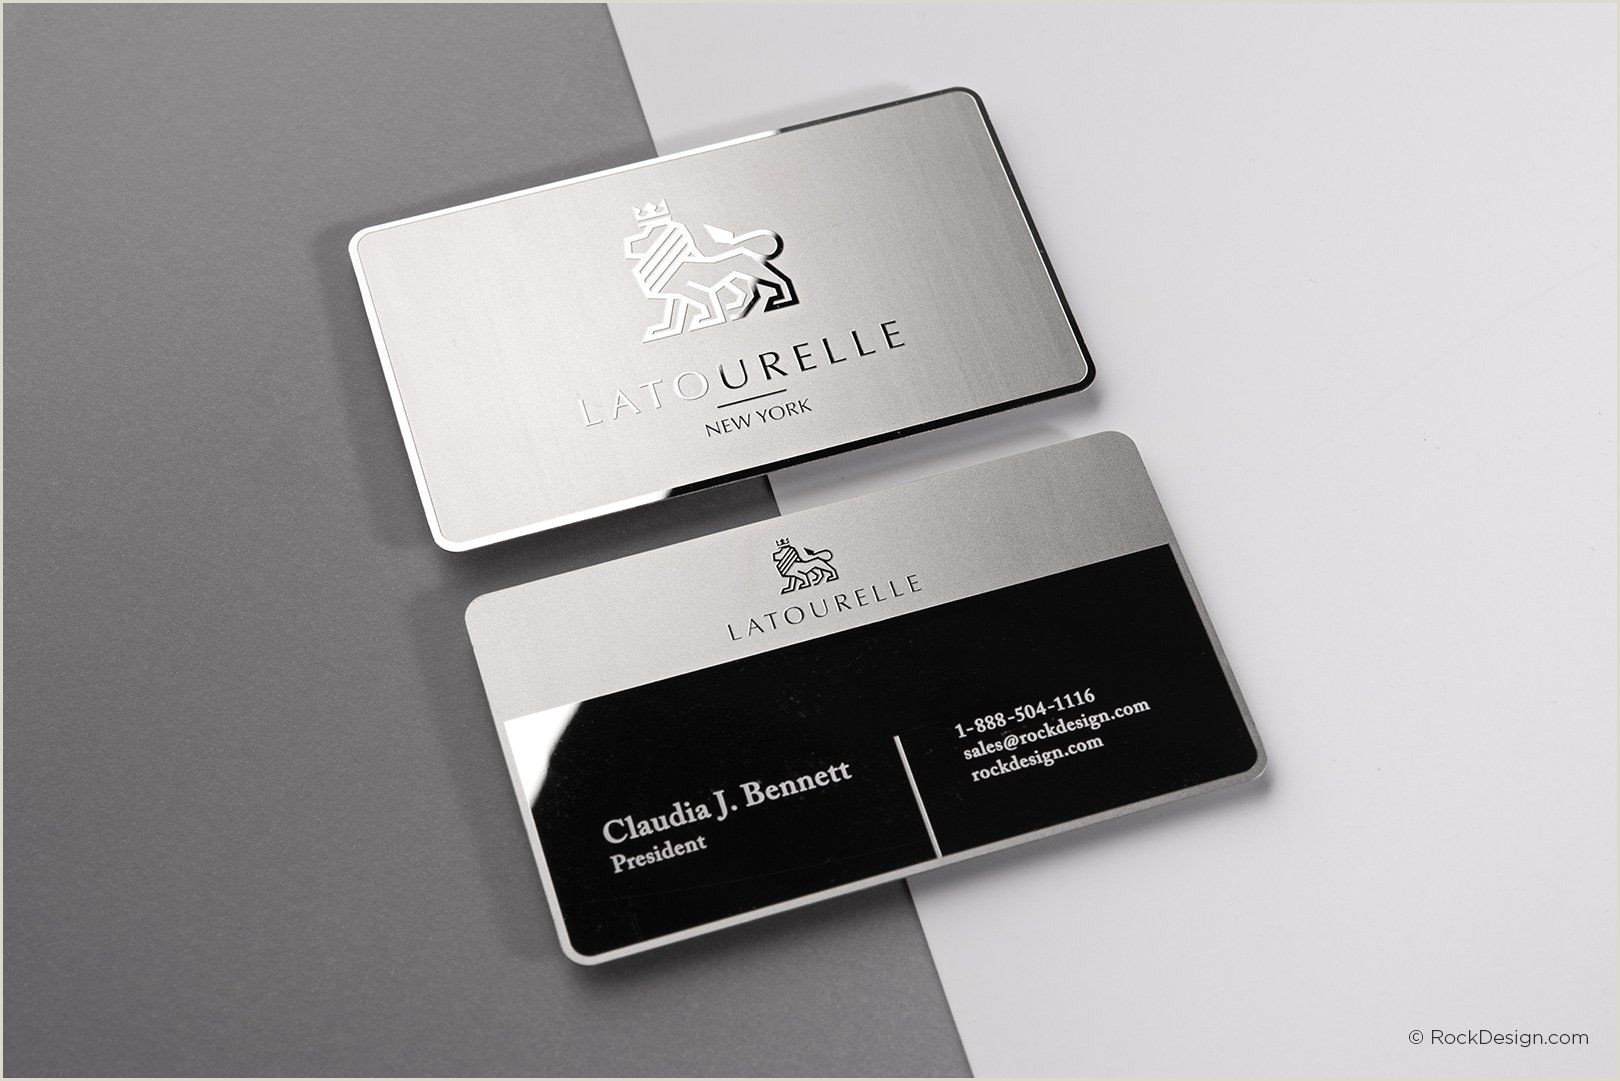 Best Business Cards New York Free Lawyer Business Card Template Rockdesign